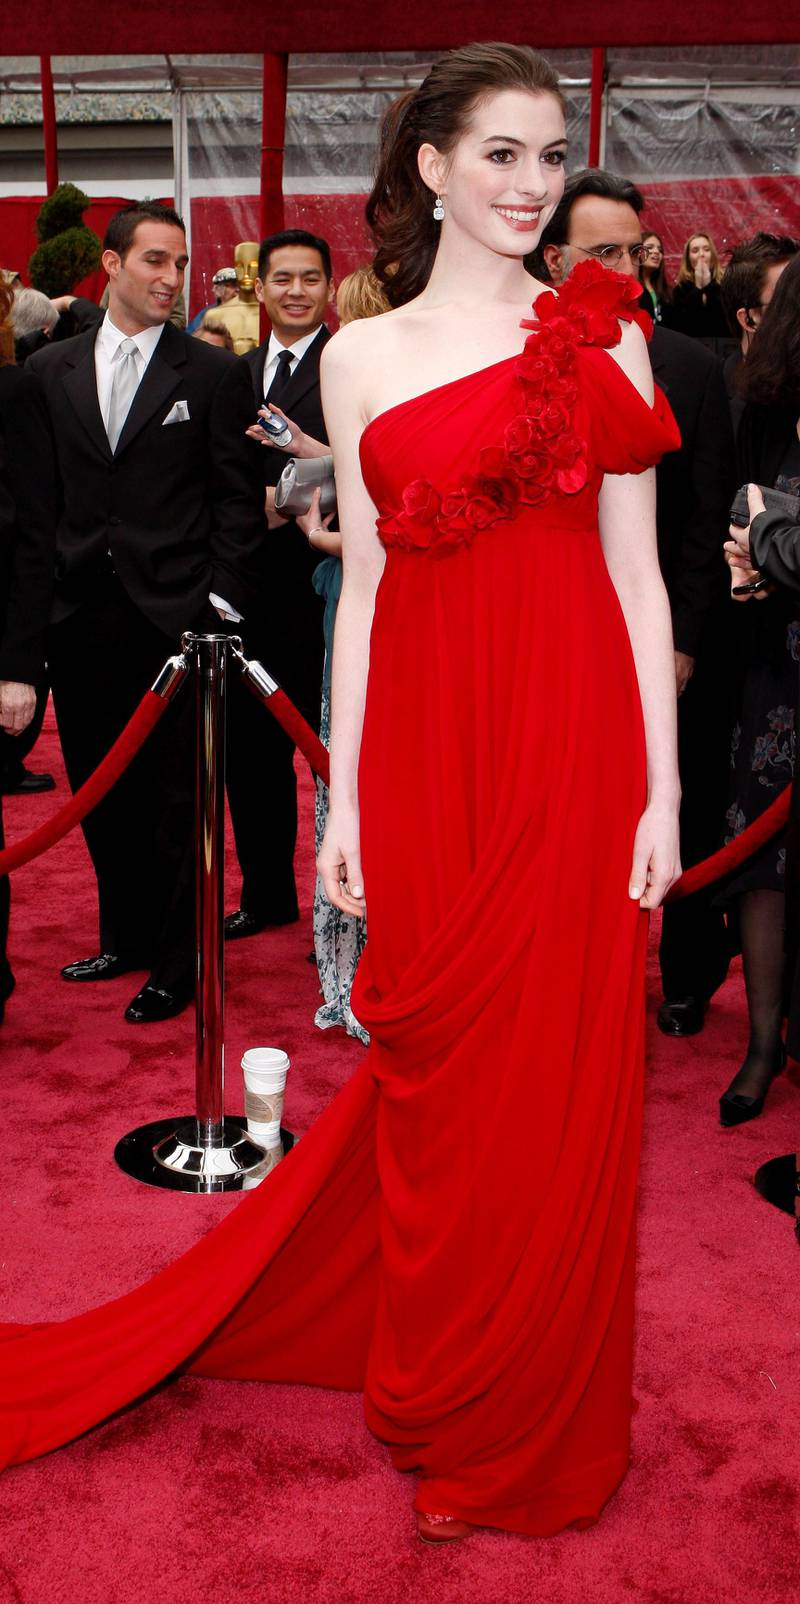 epa01265909 US actress Anne Hathaway arrives for the 80th annual Academy Awards at the Kodak Theatre in Hollywood, California, USA, 24 February 2008. The Academy Awards, popularly known as the Oscars, are presented by the Academy of Motion Picture Arts and Sciences (AMPAS) to recognize excellence of professionals in the film industry, including directors, actors, and writers.  EPA/ANDREW GOMBERT